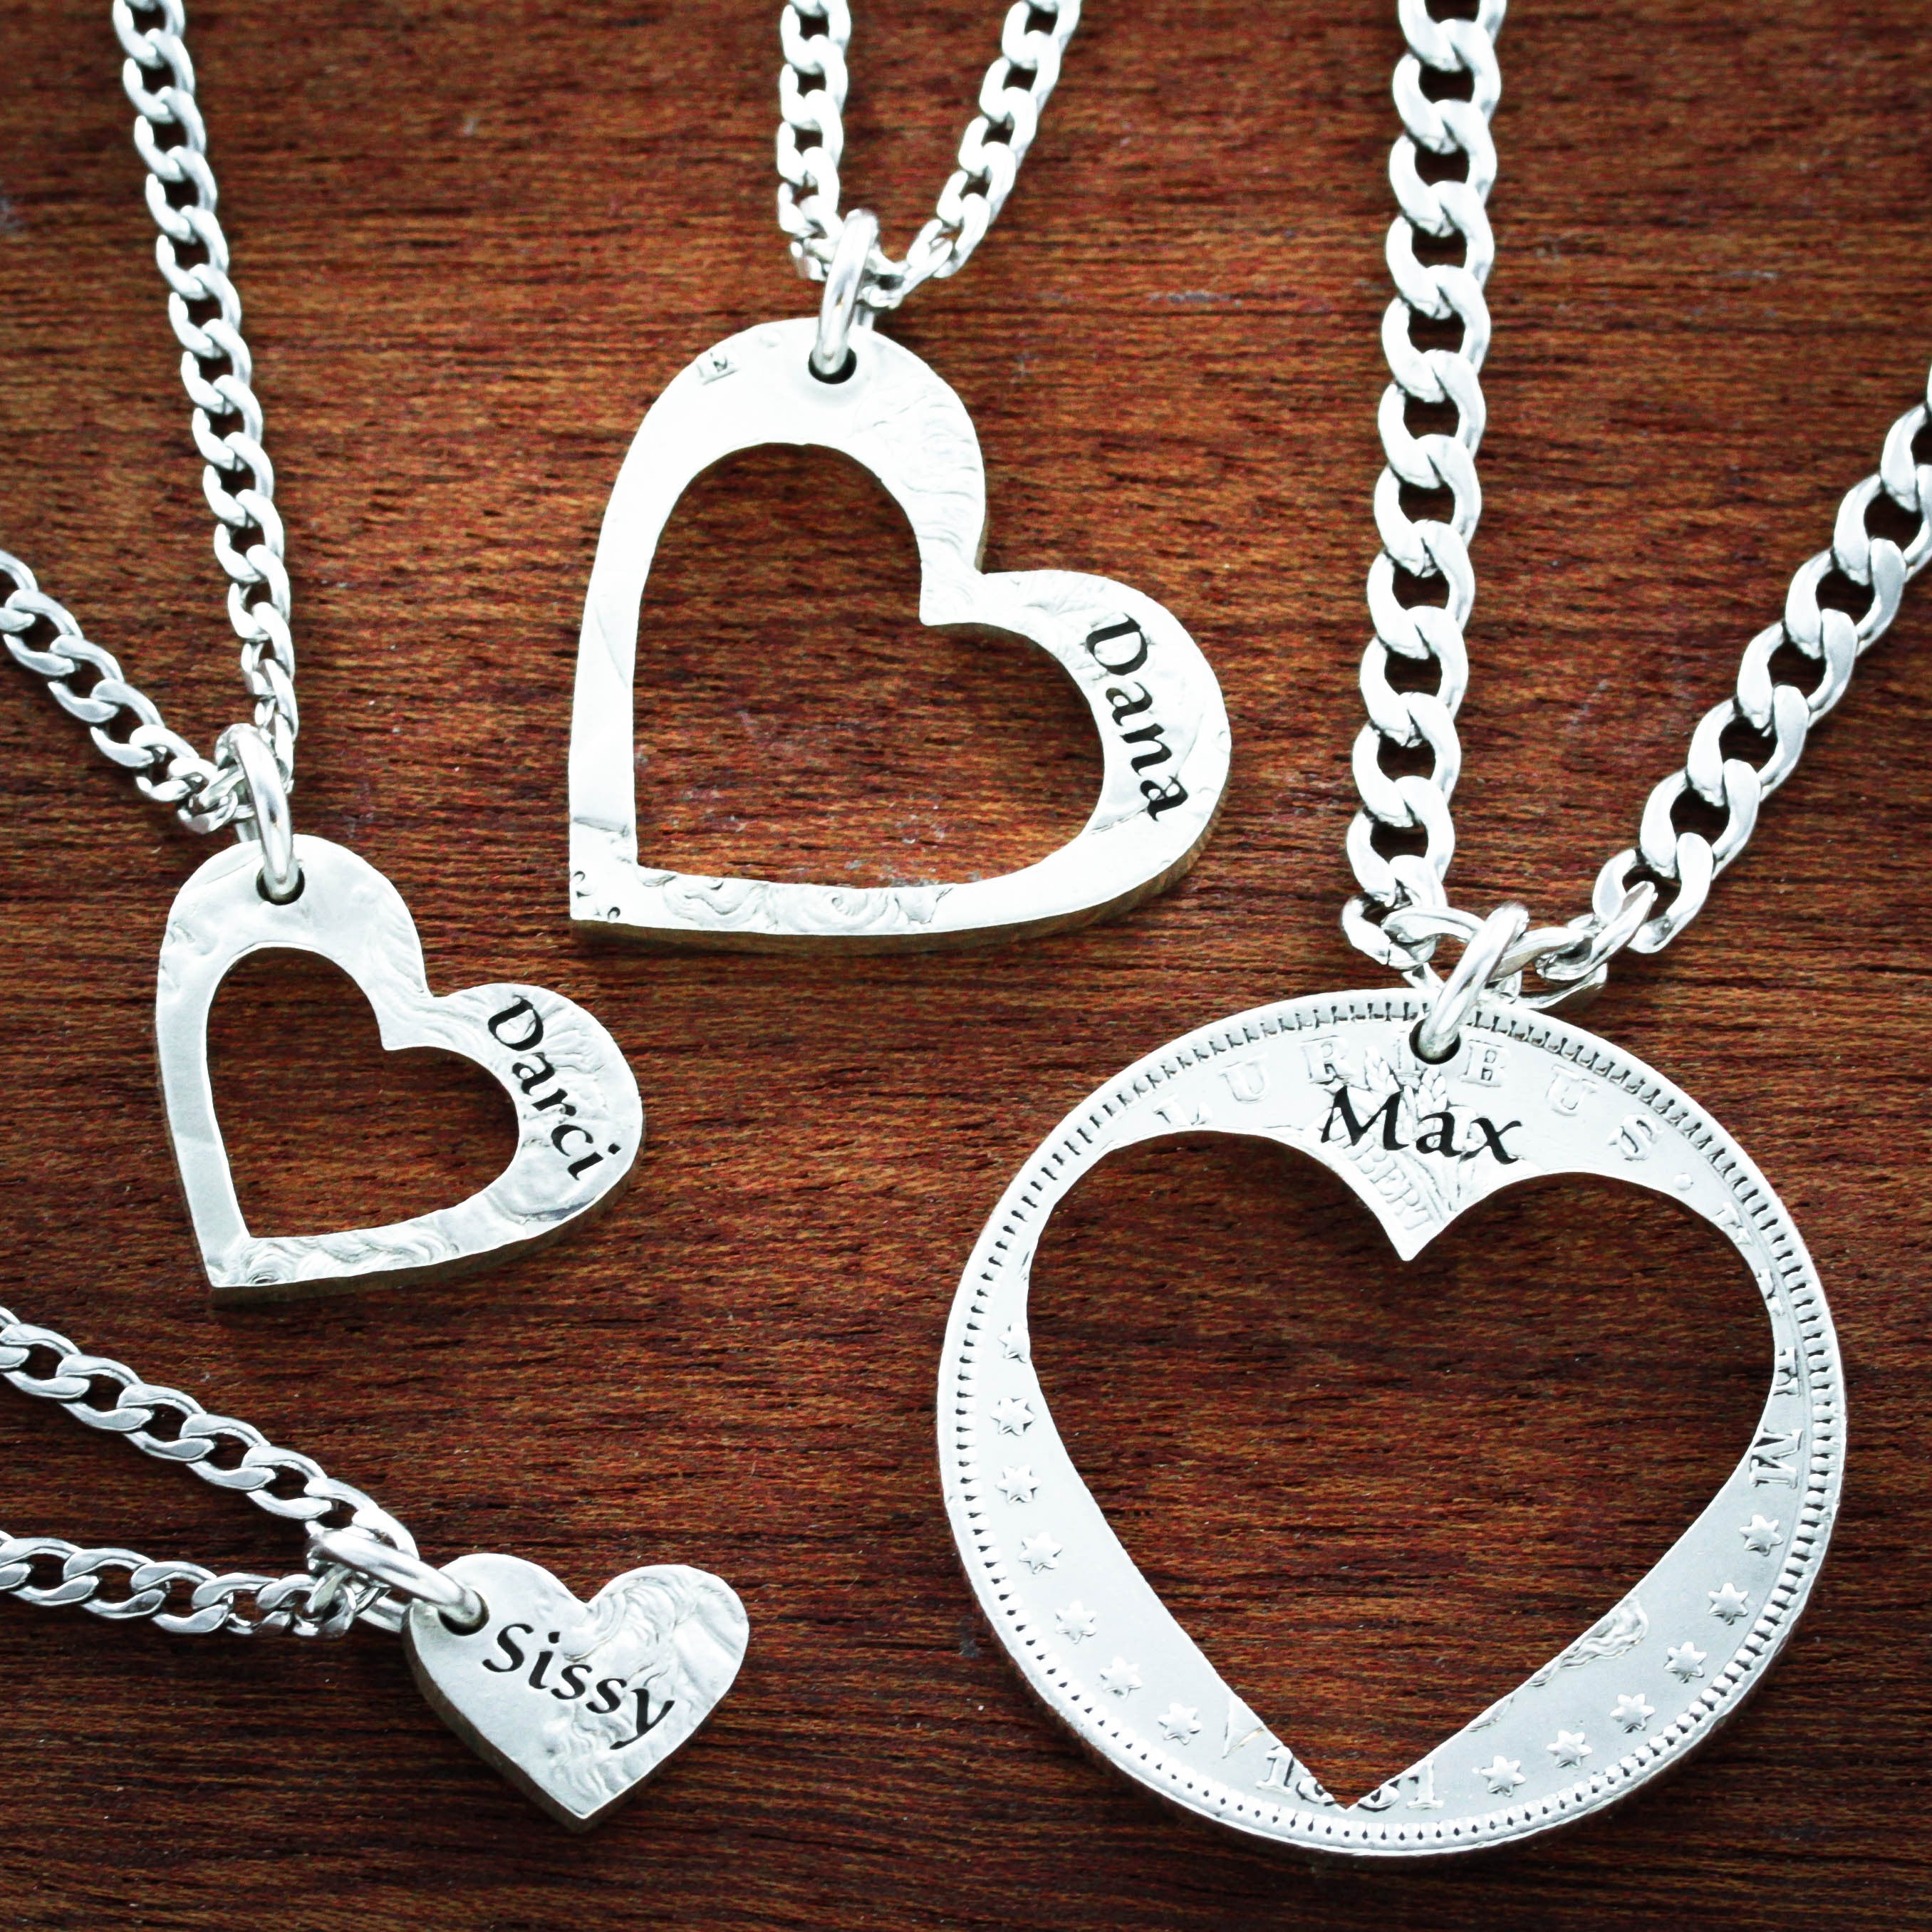 chain heart custom chains pend necklaces dia photo gallery